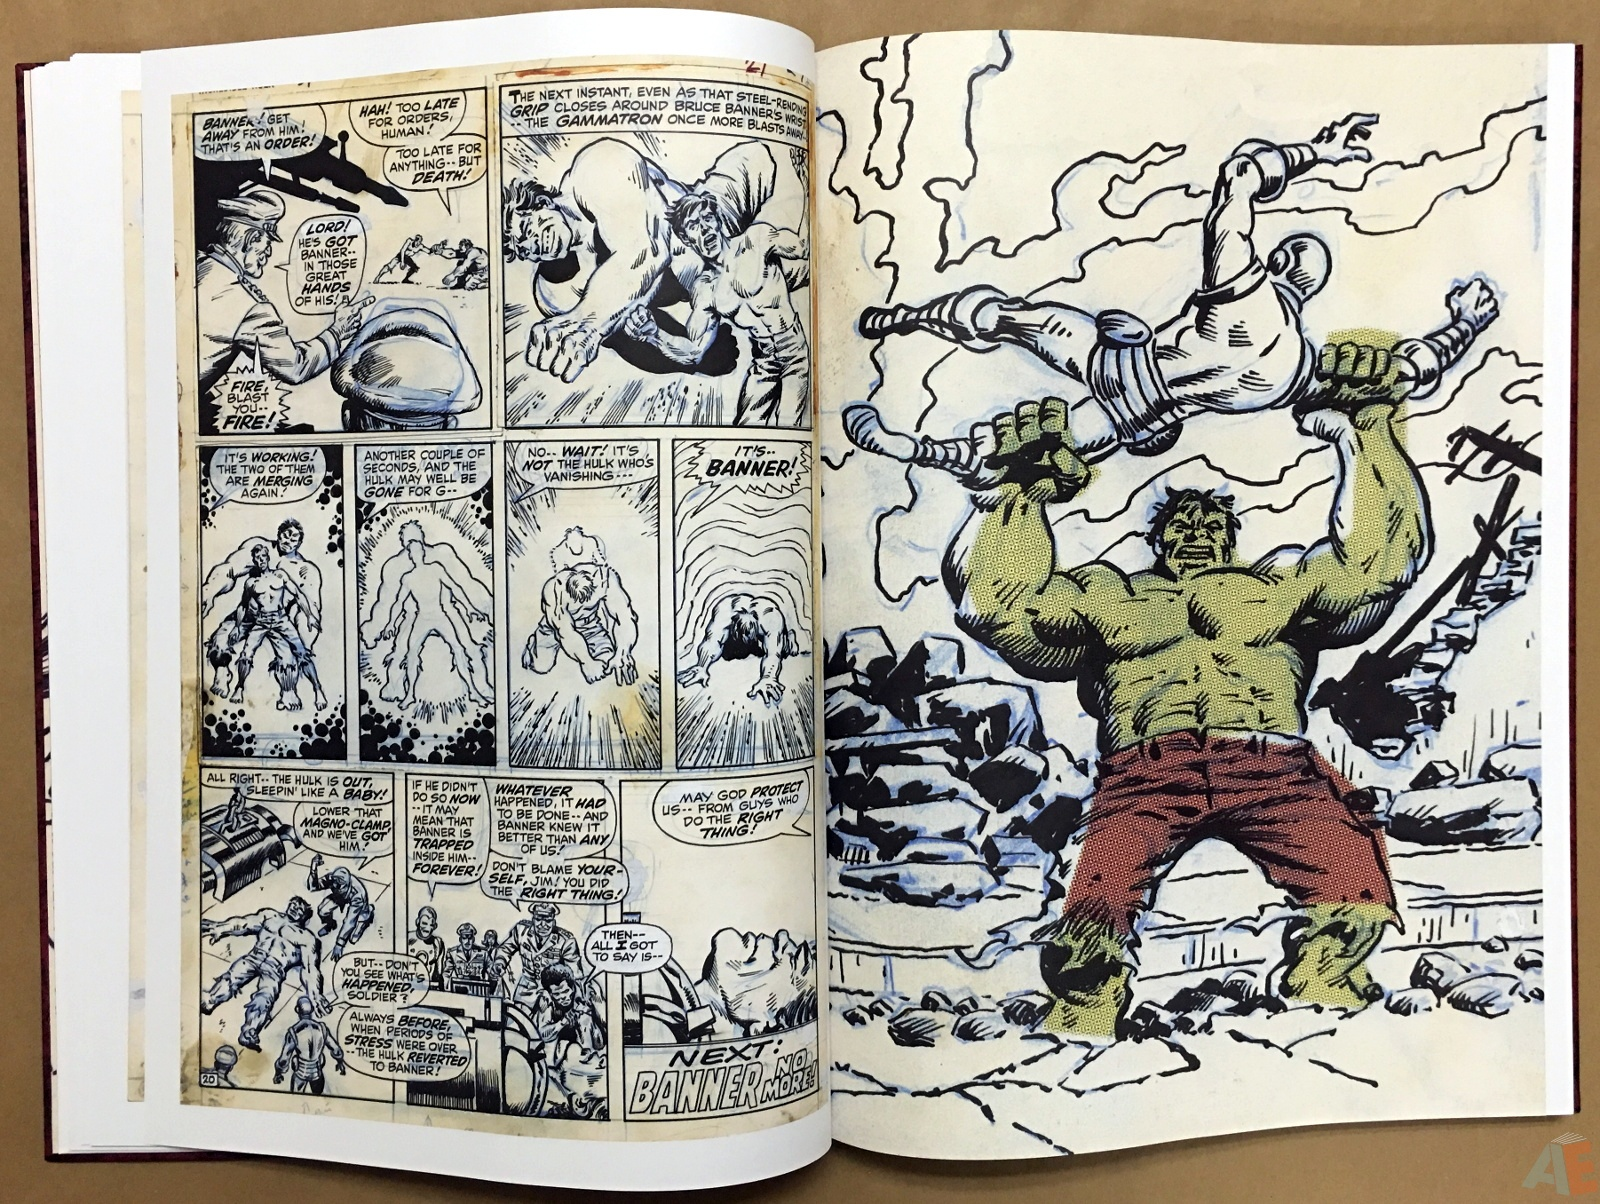 Herb Trimpe's The Incredible Hulk Artist's Edition 16